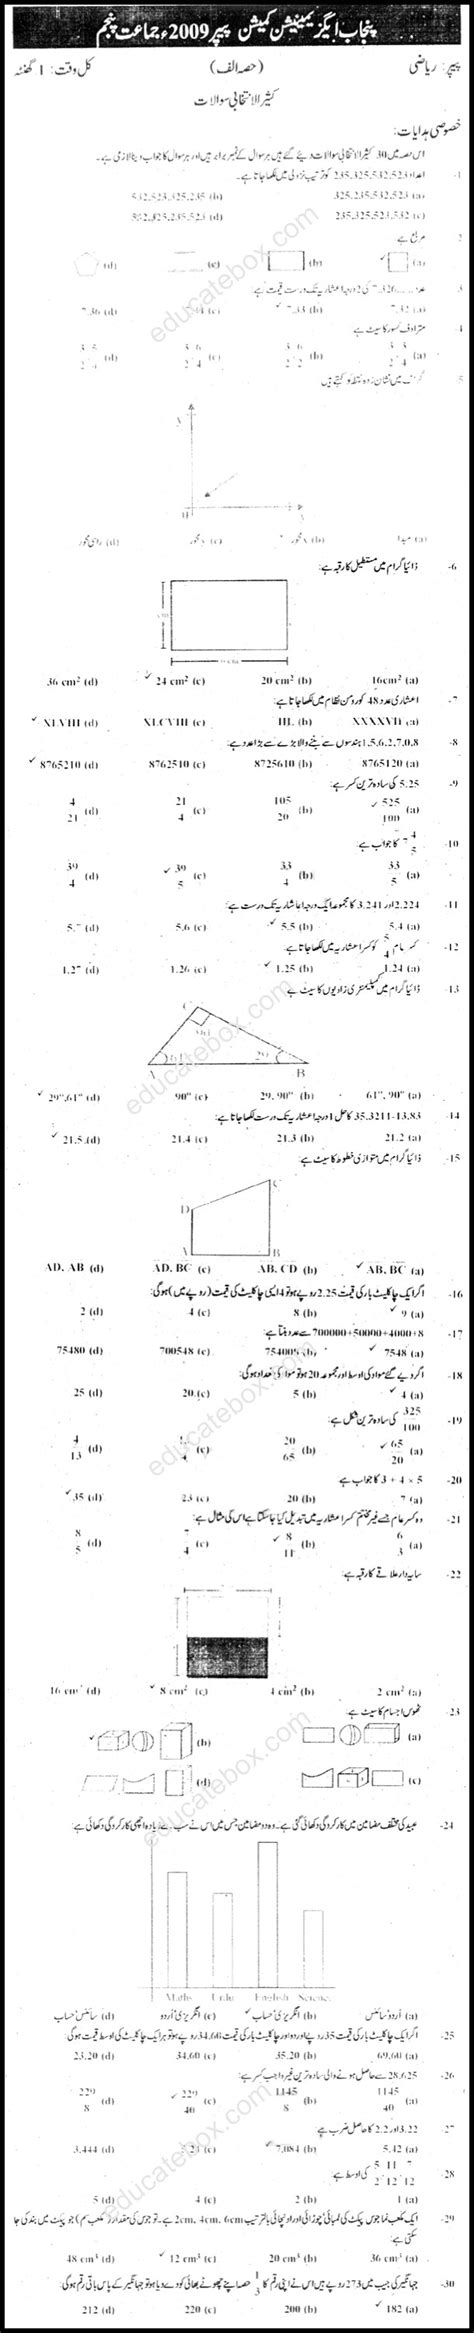 icse class 5 maths worksheets sle question papers for